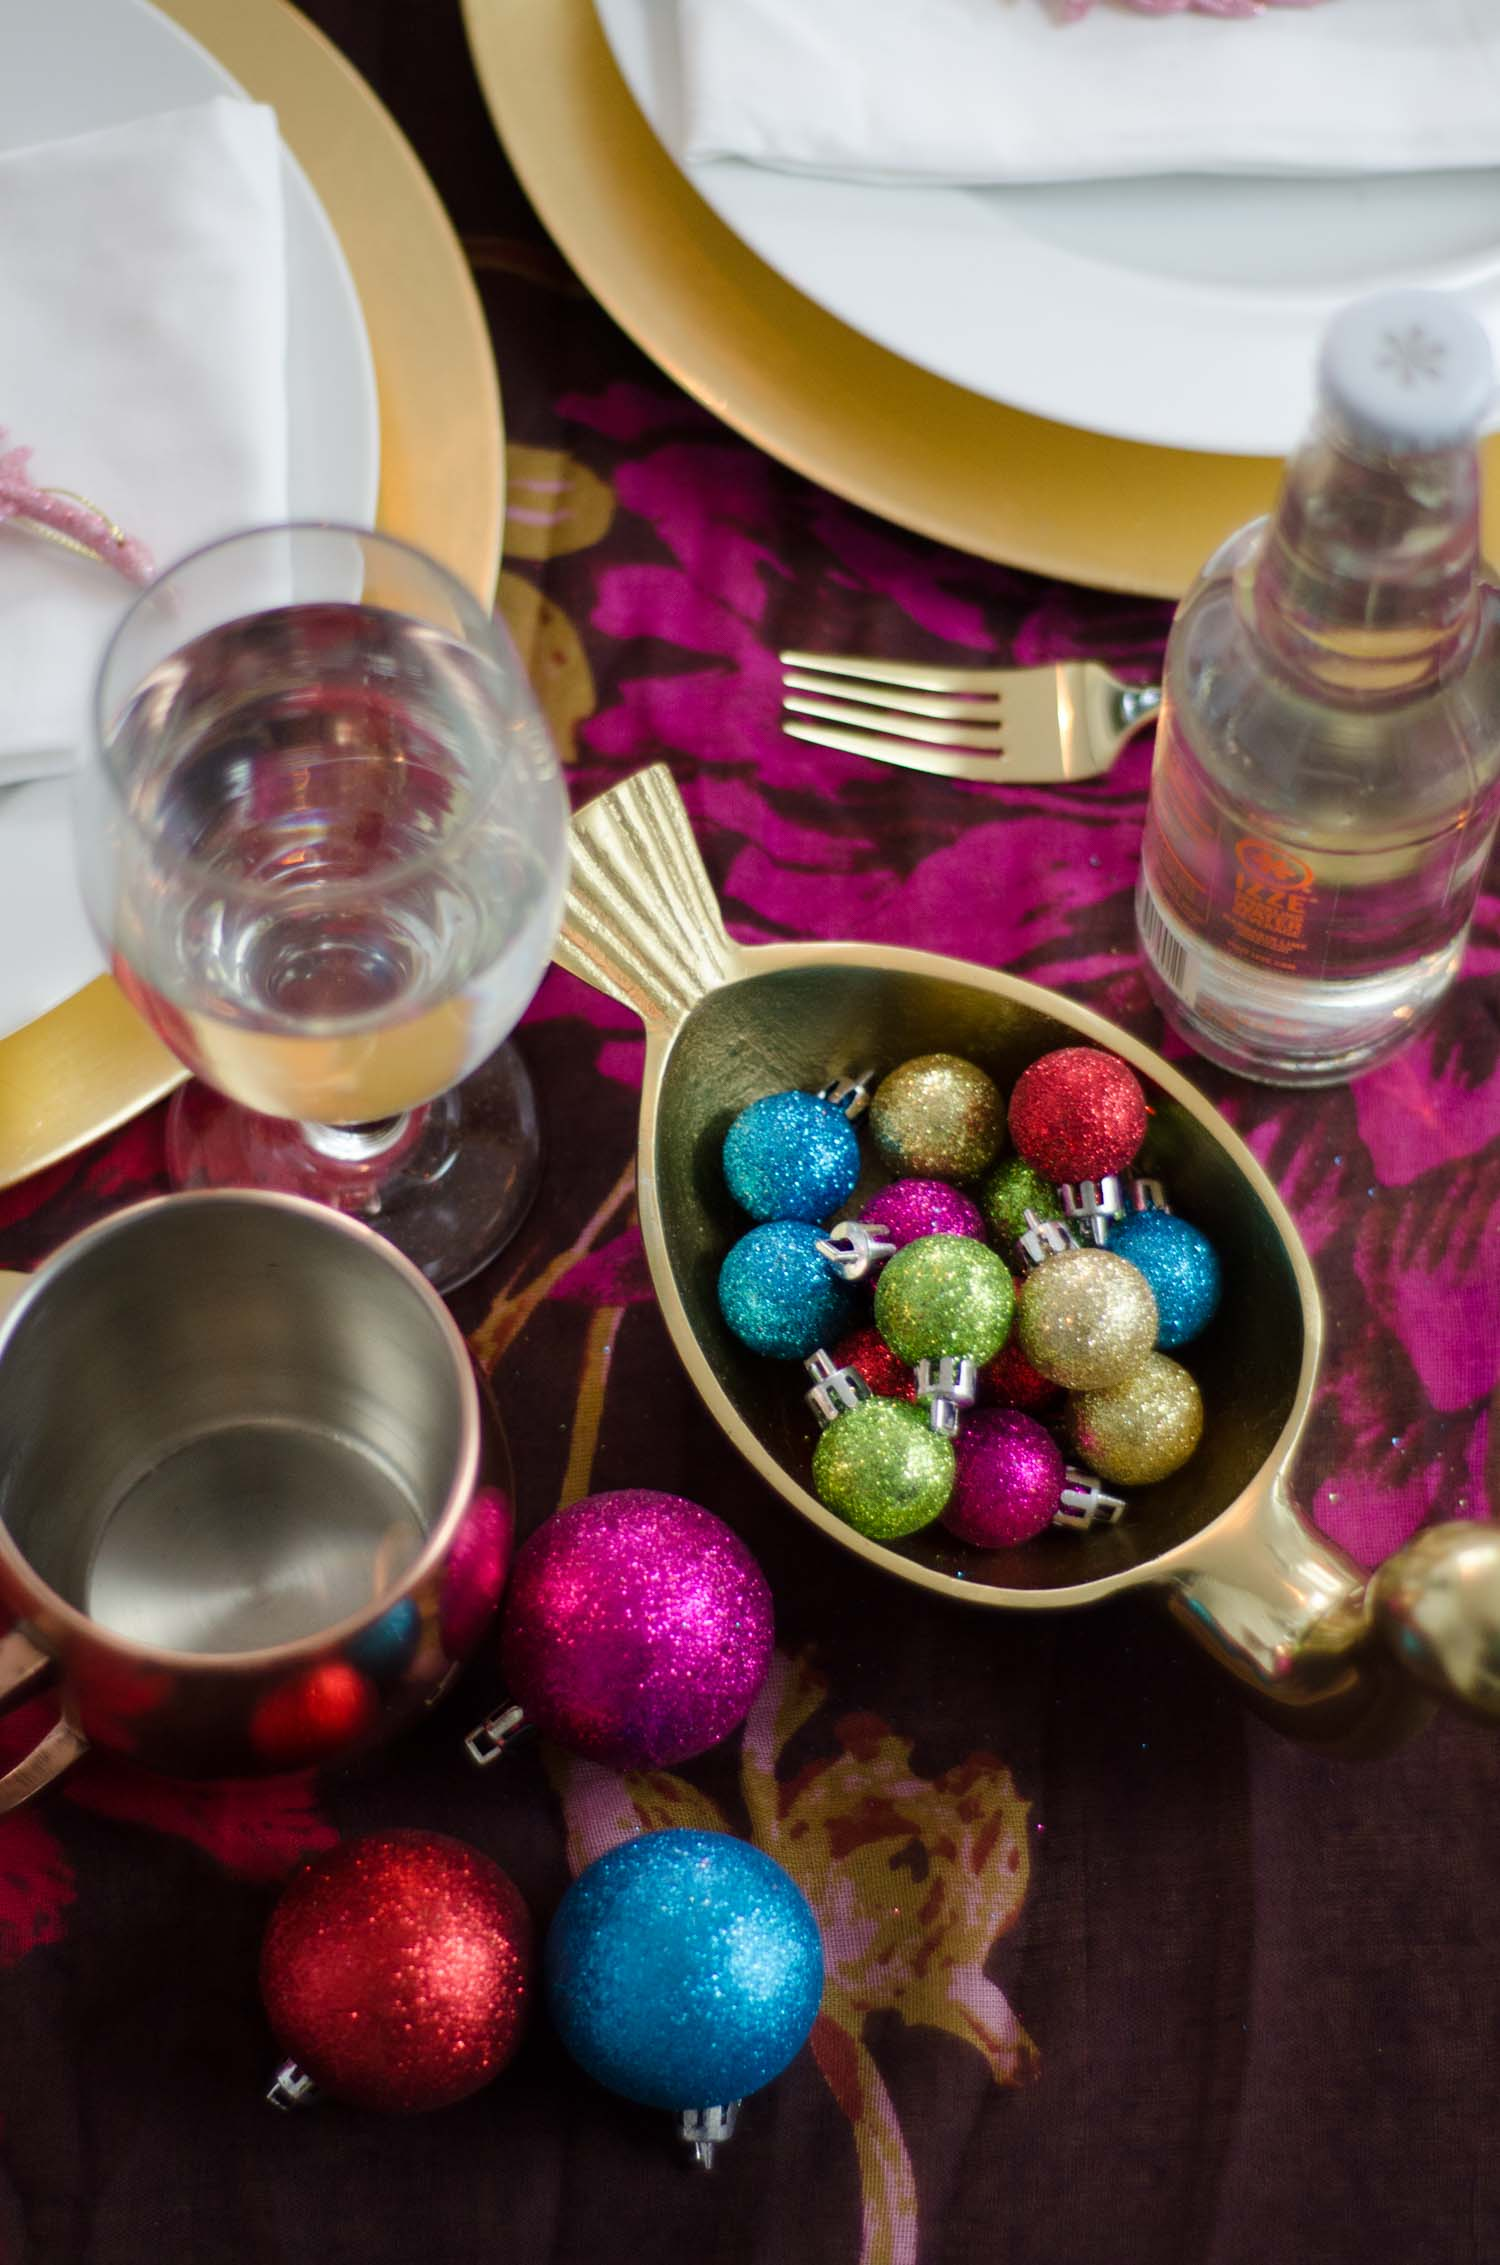 Sparkly Christmas ornaments in holiday brights in a Nate Berkus bird dish, vibrant holiday table setting on @thouswellblog